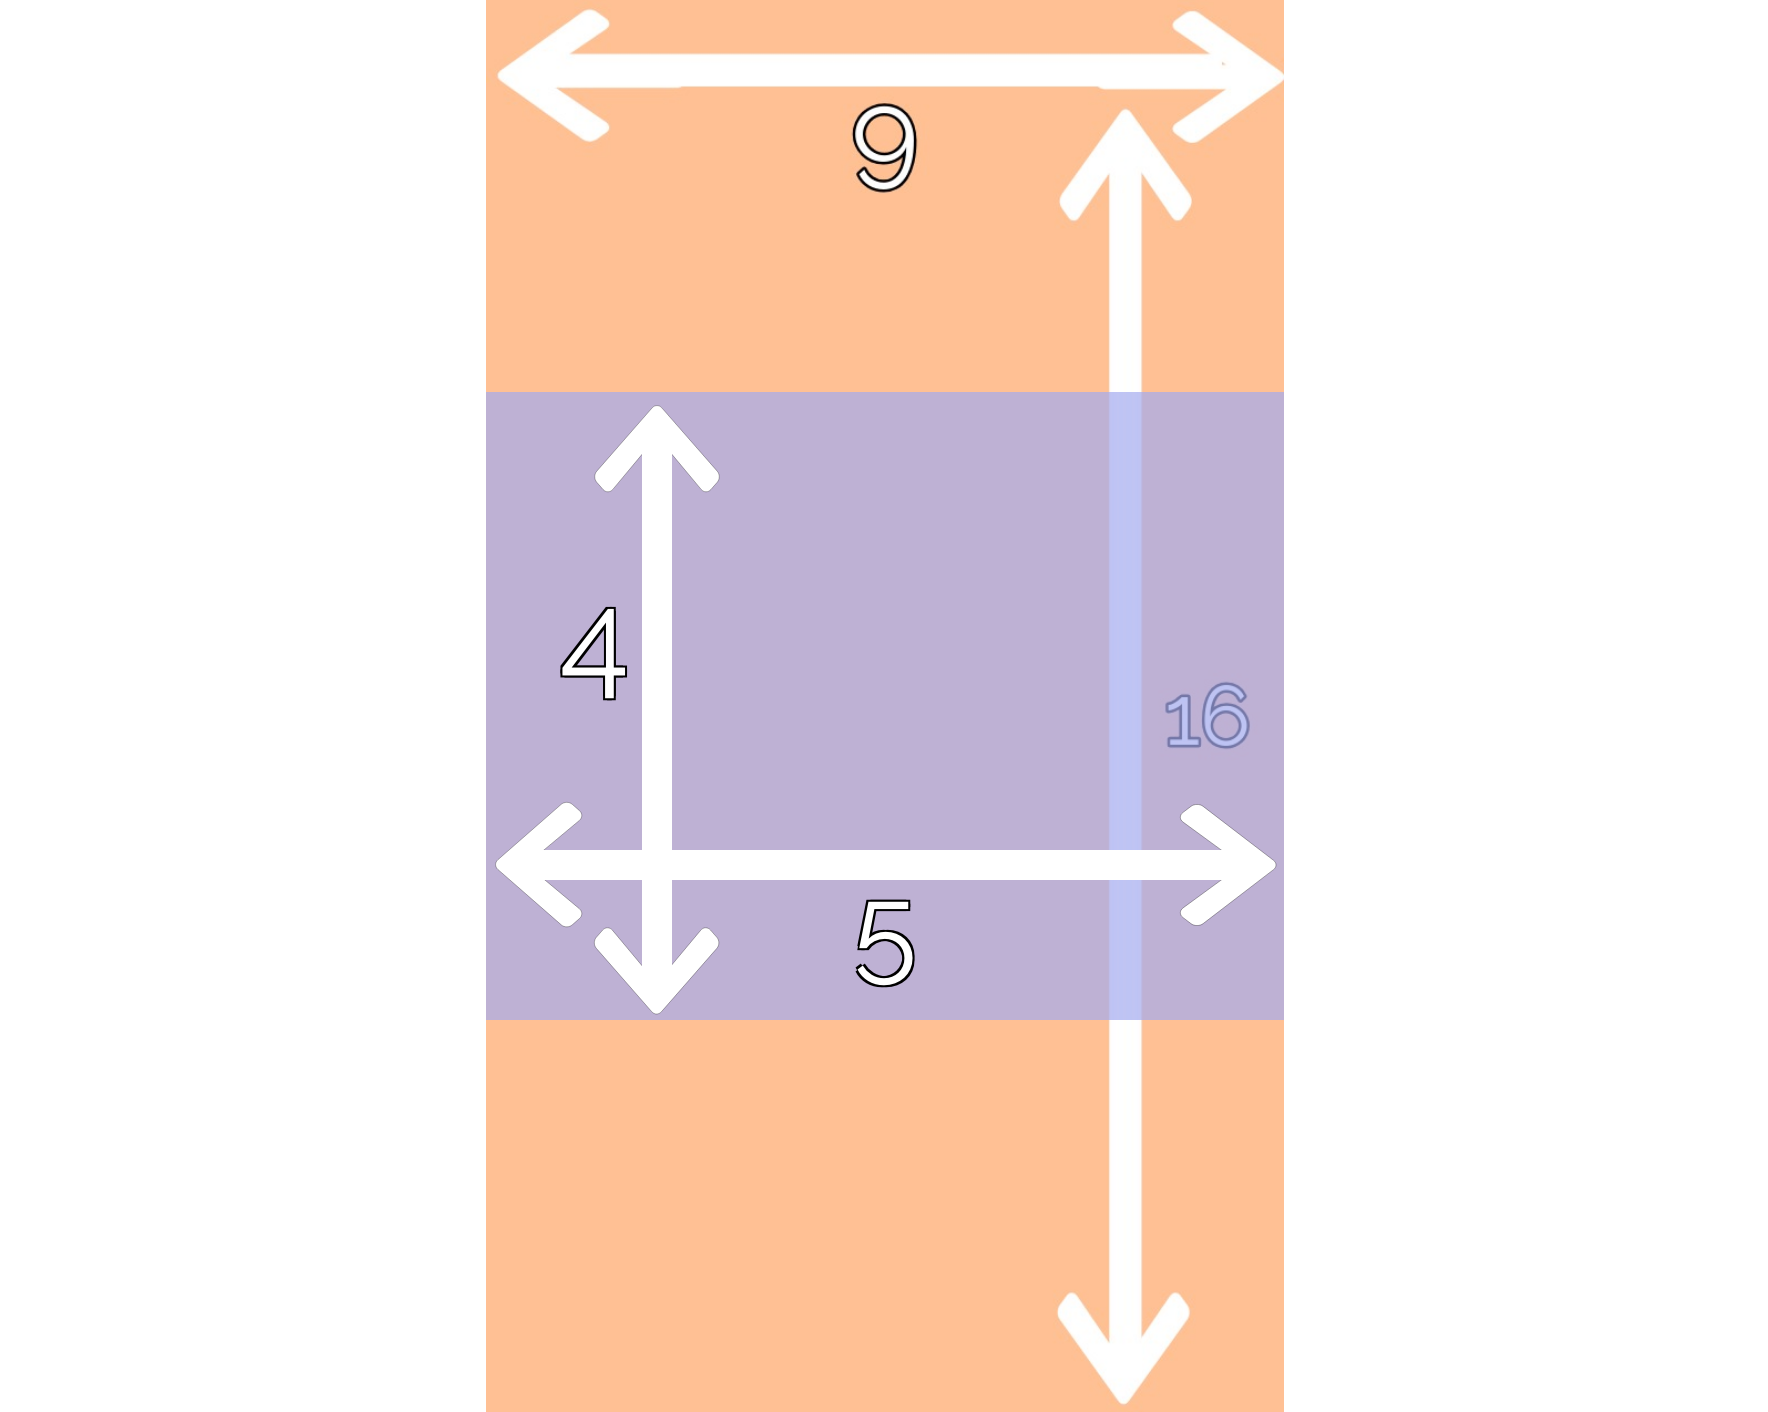 A graphic showing the recommended dimensions for Reddit content.